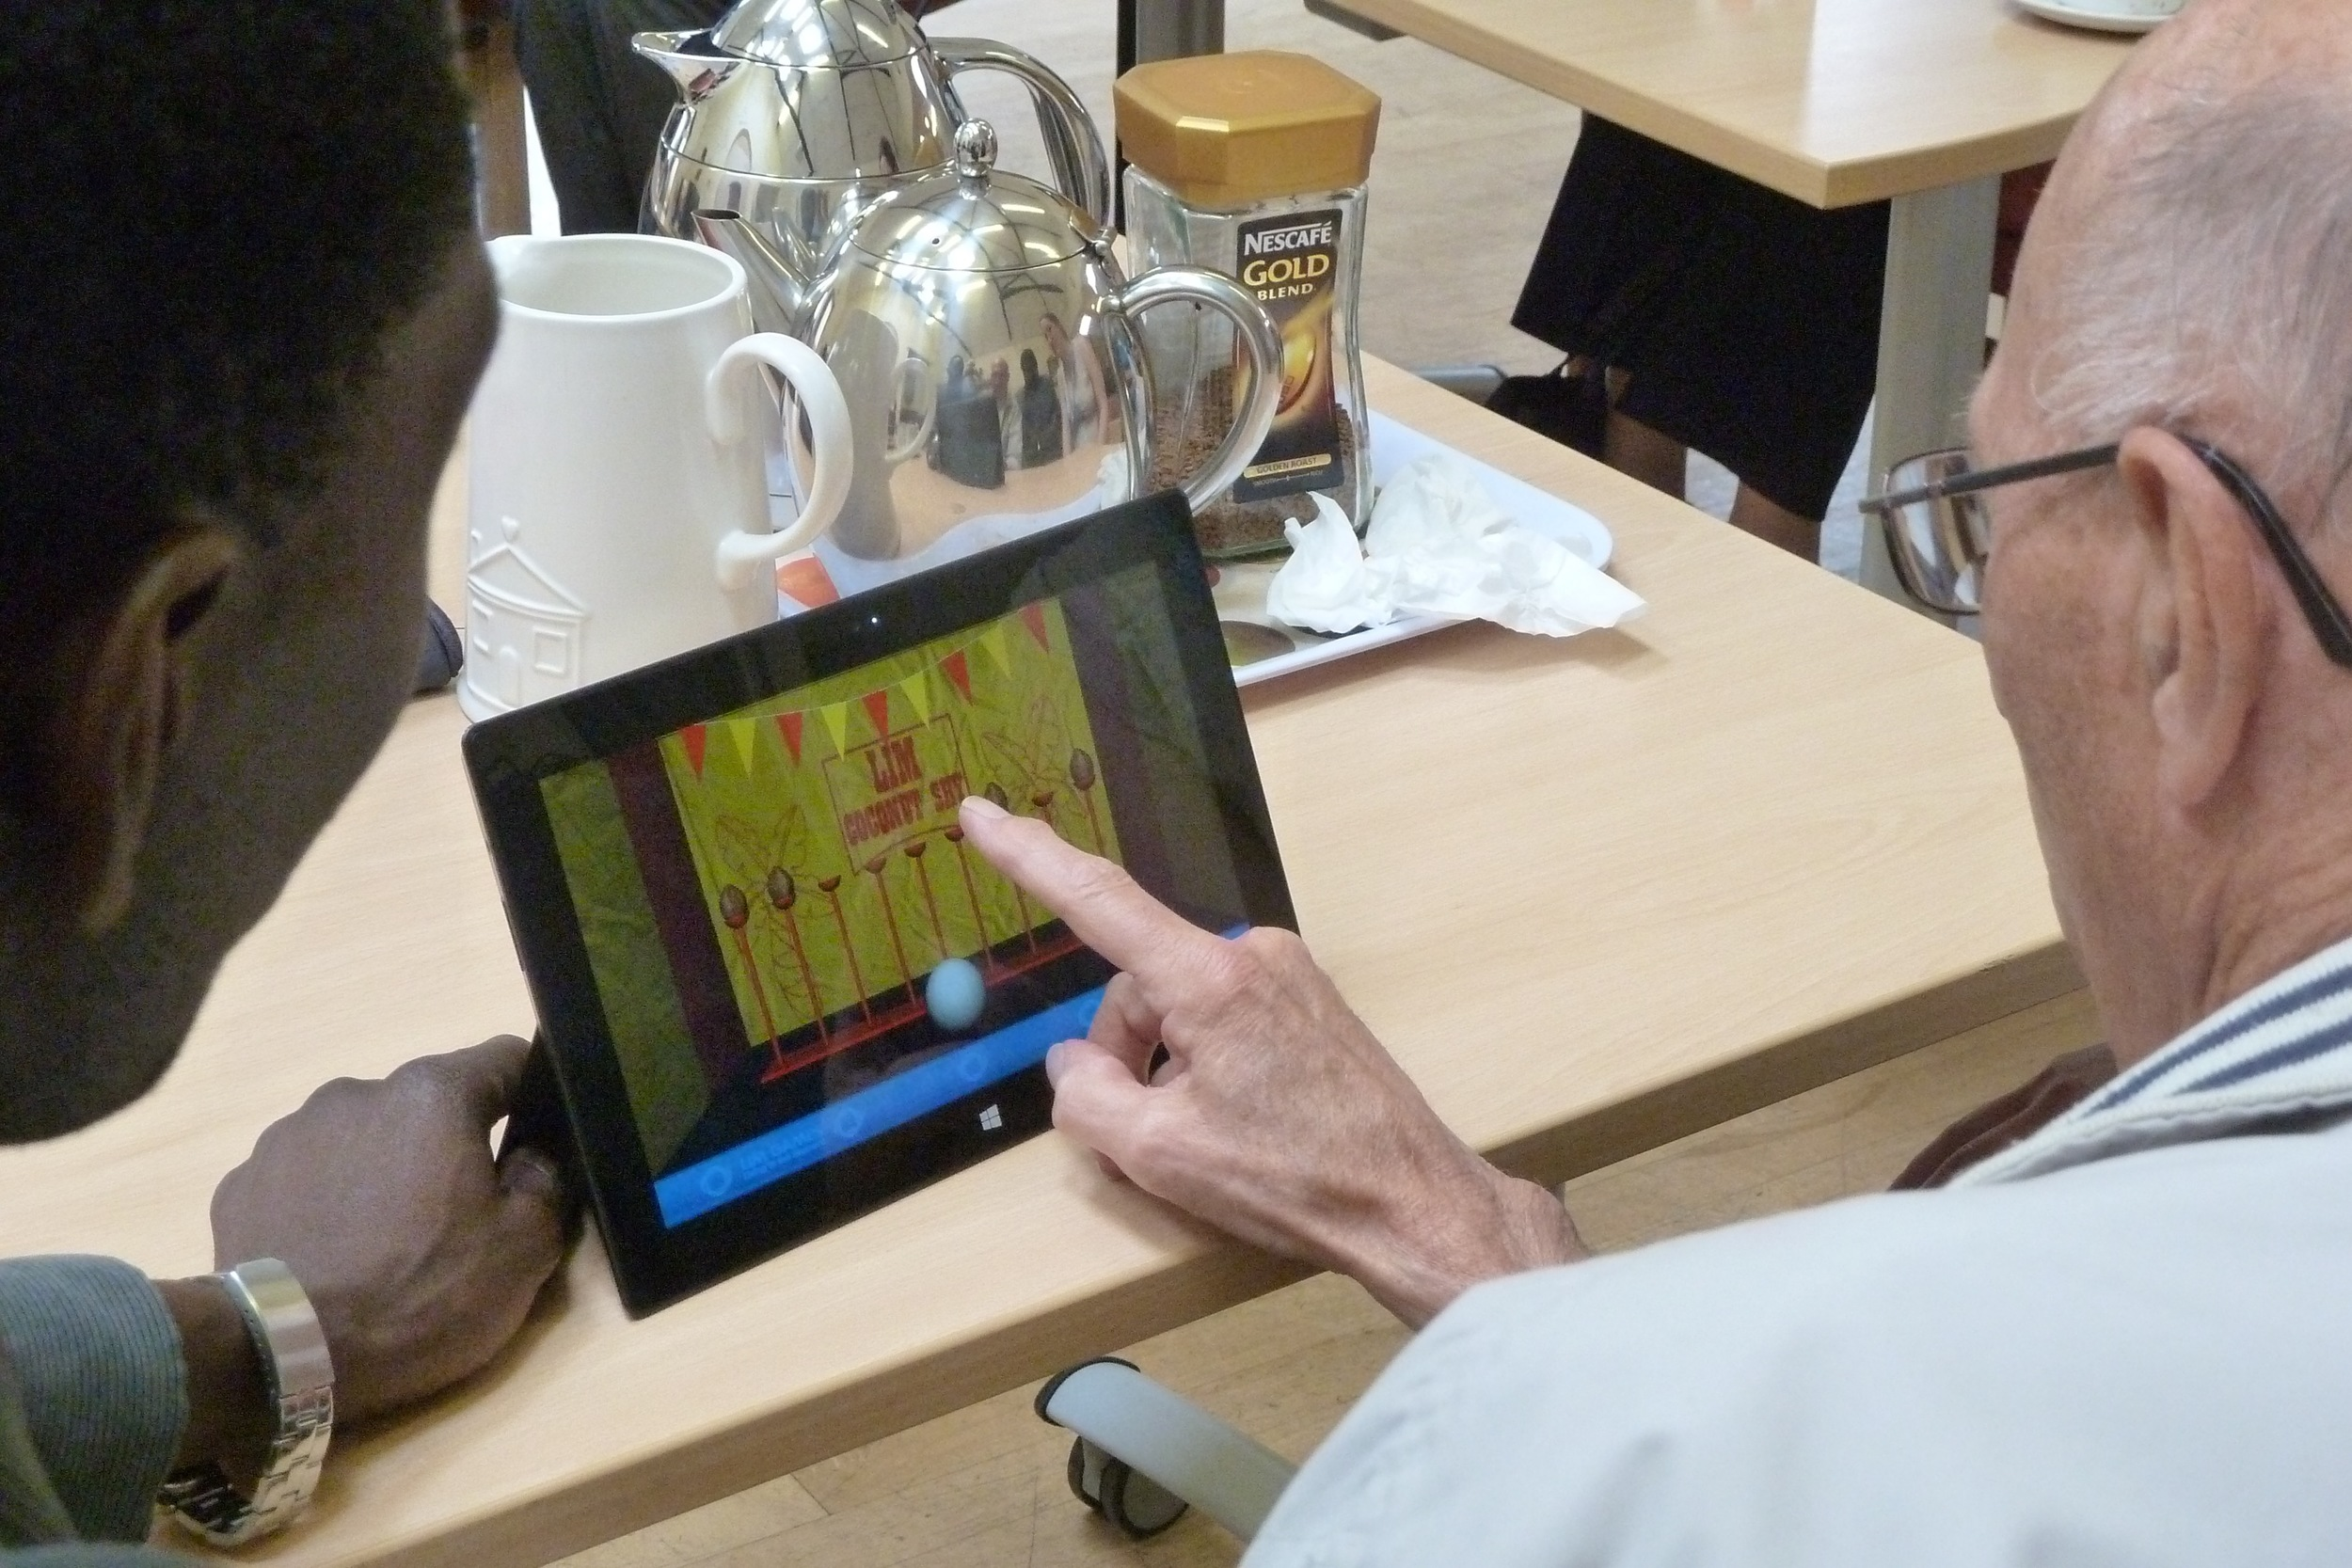 Participants engaging with touchscreen activities (3)